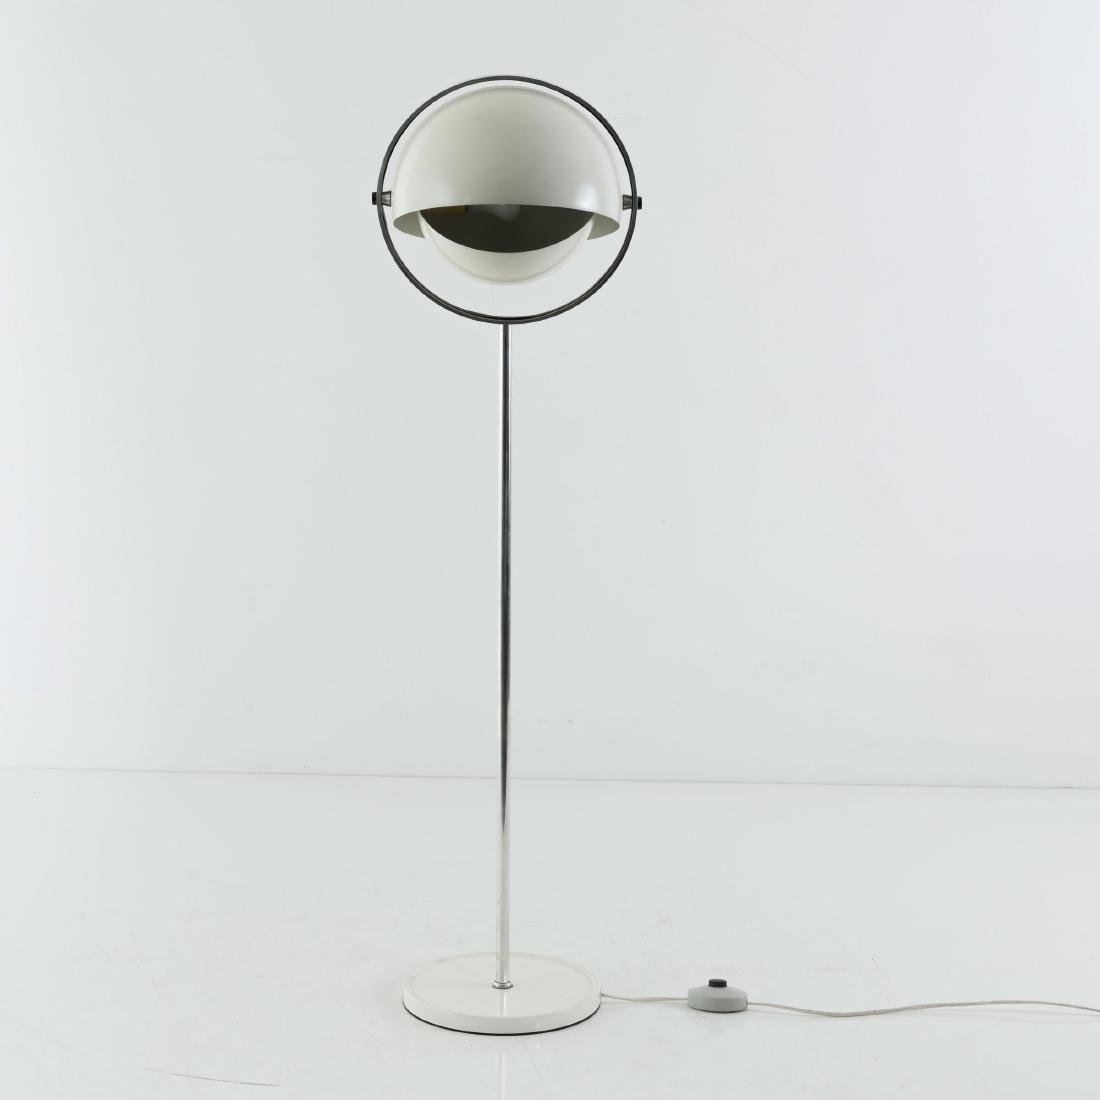 'Moonlight' floor lamp, 1963 - 3